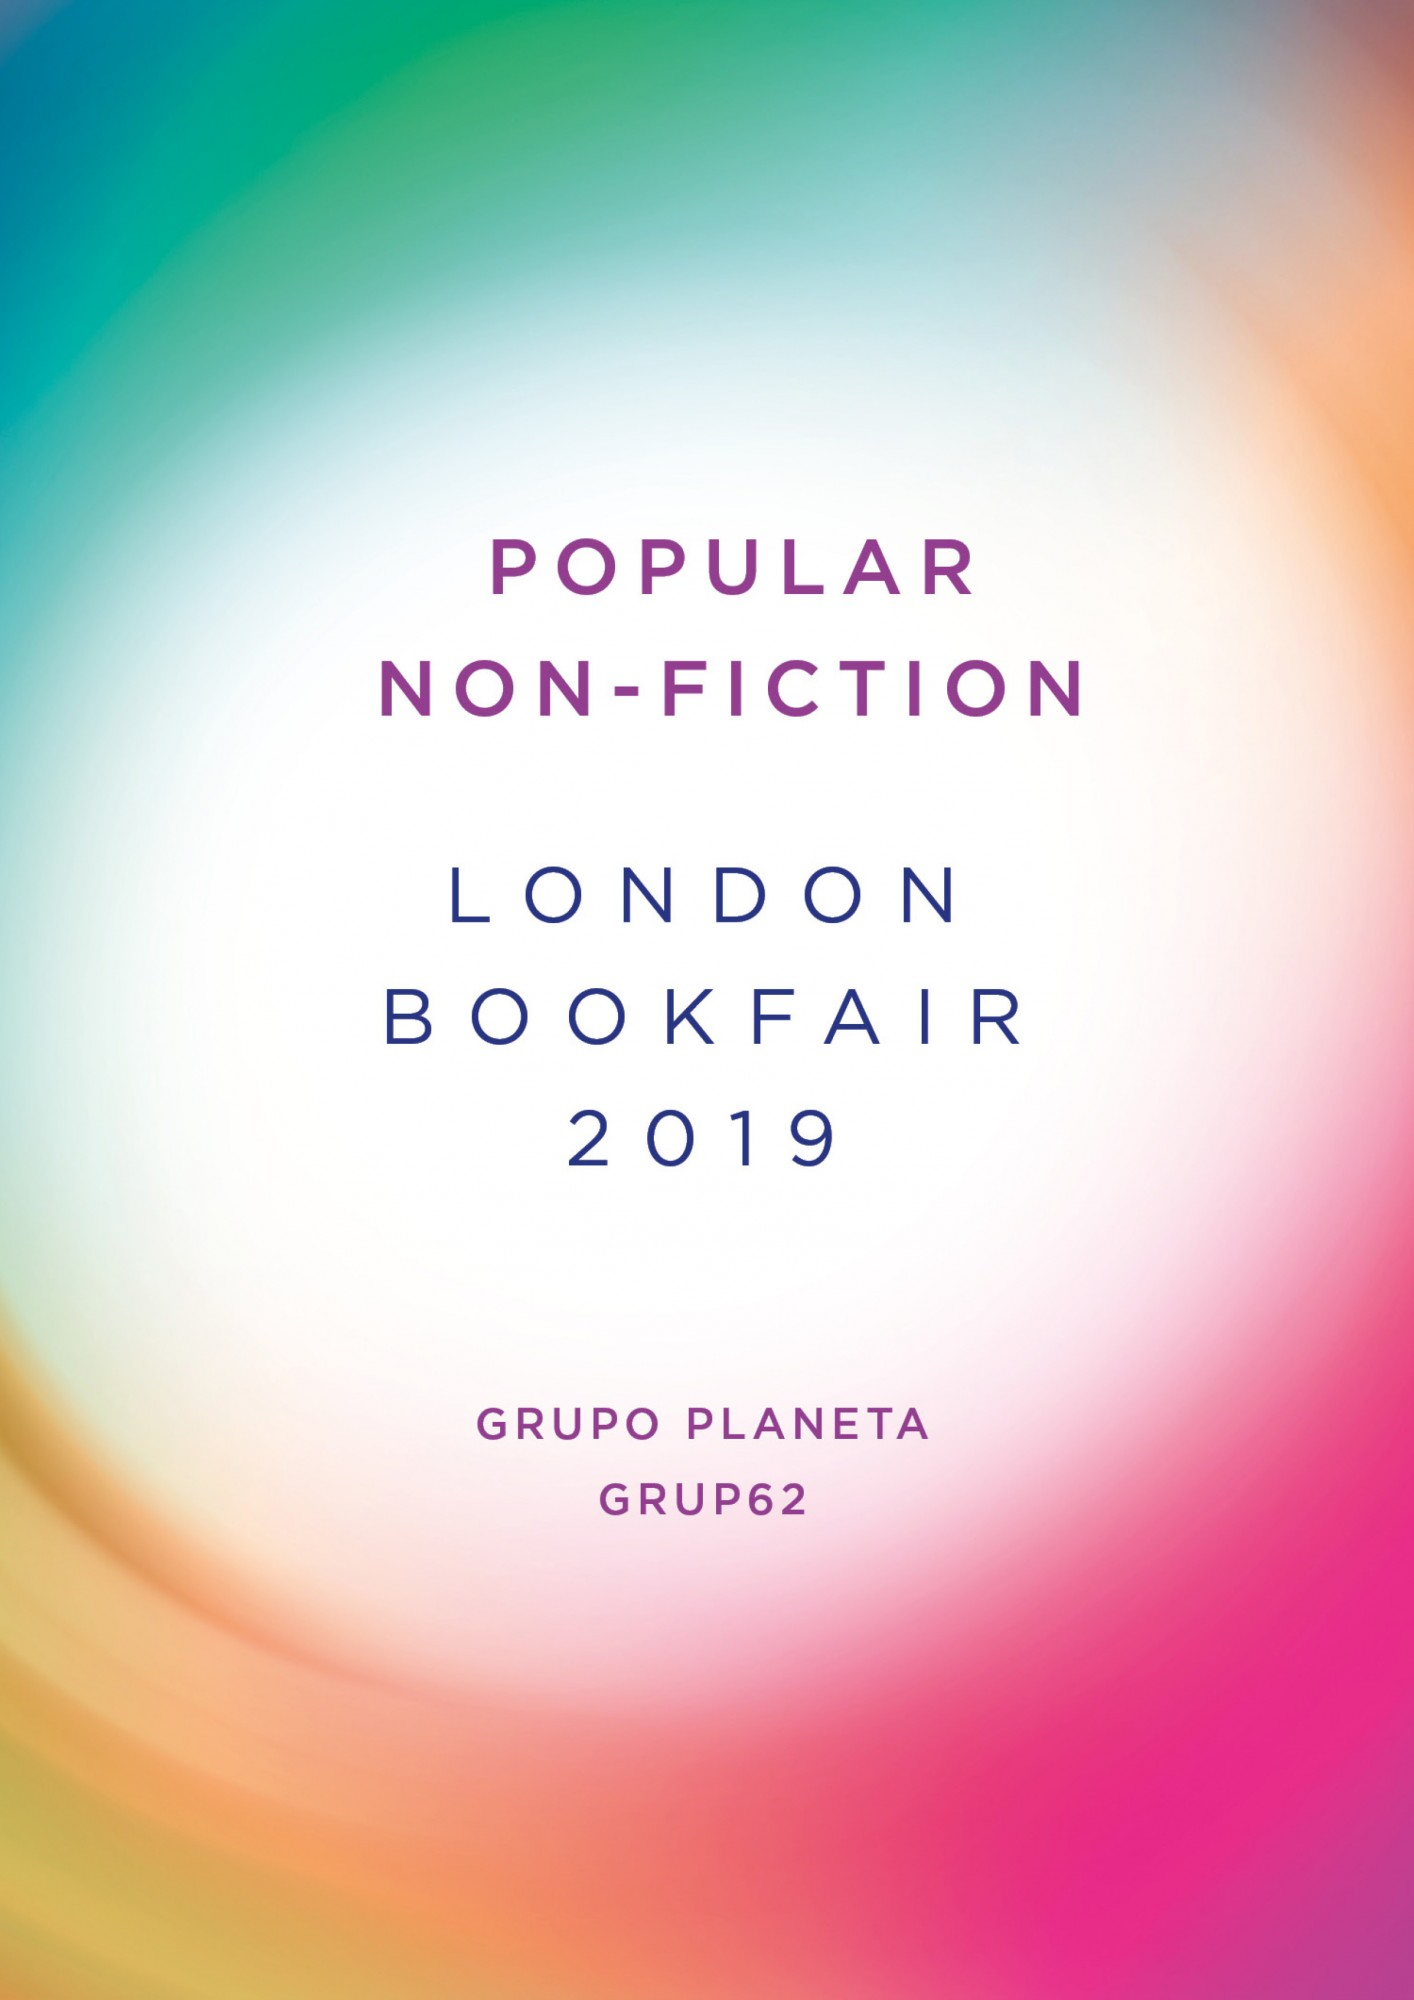 London 2019 Popular Non Fiction